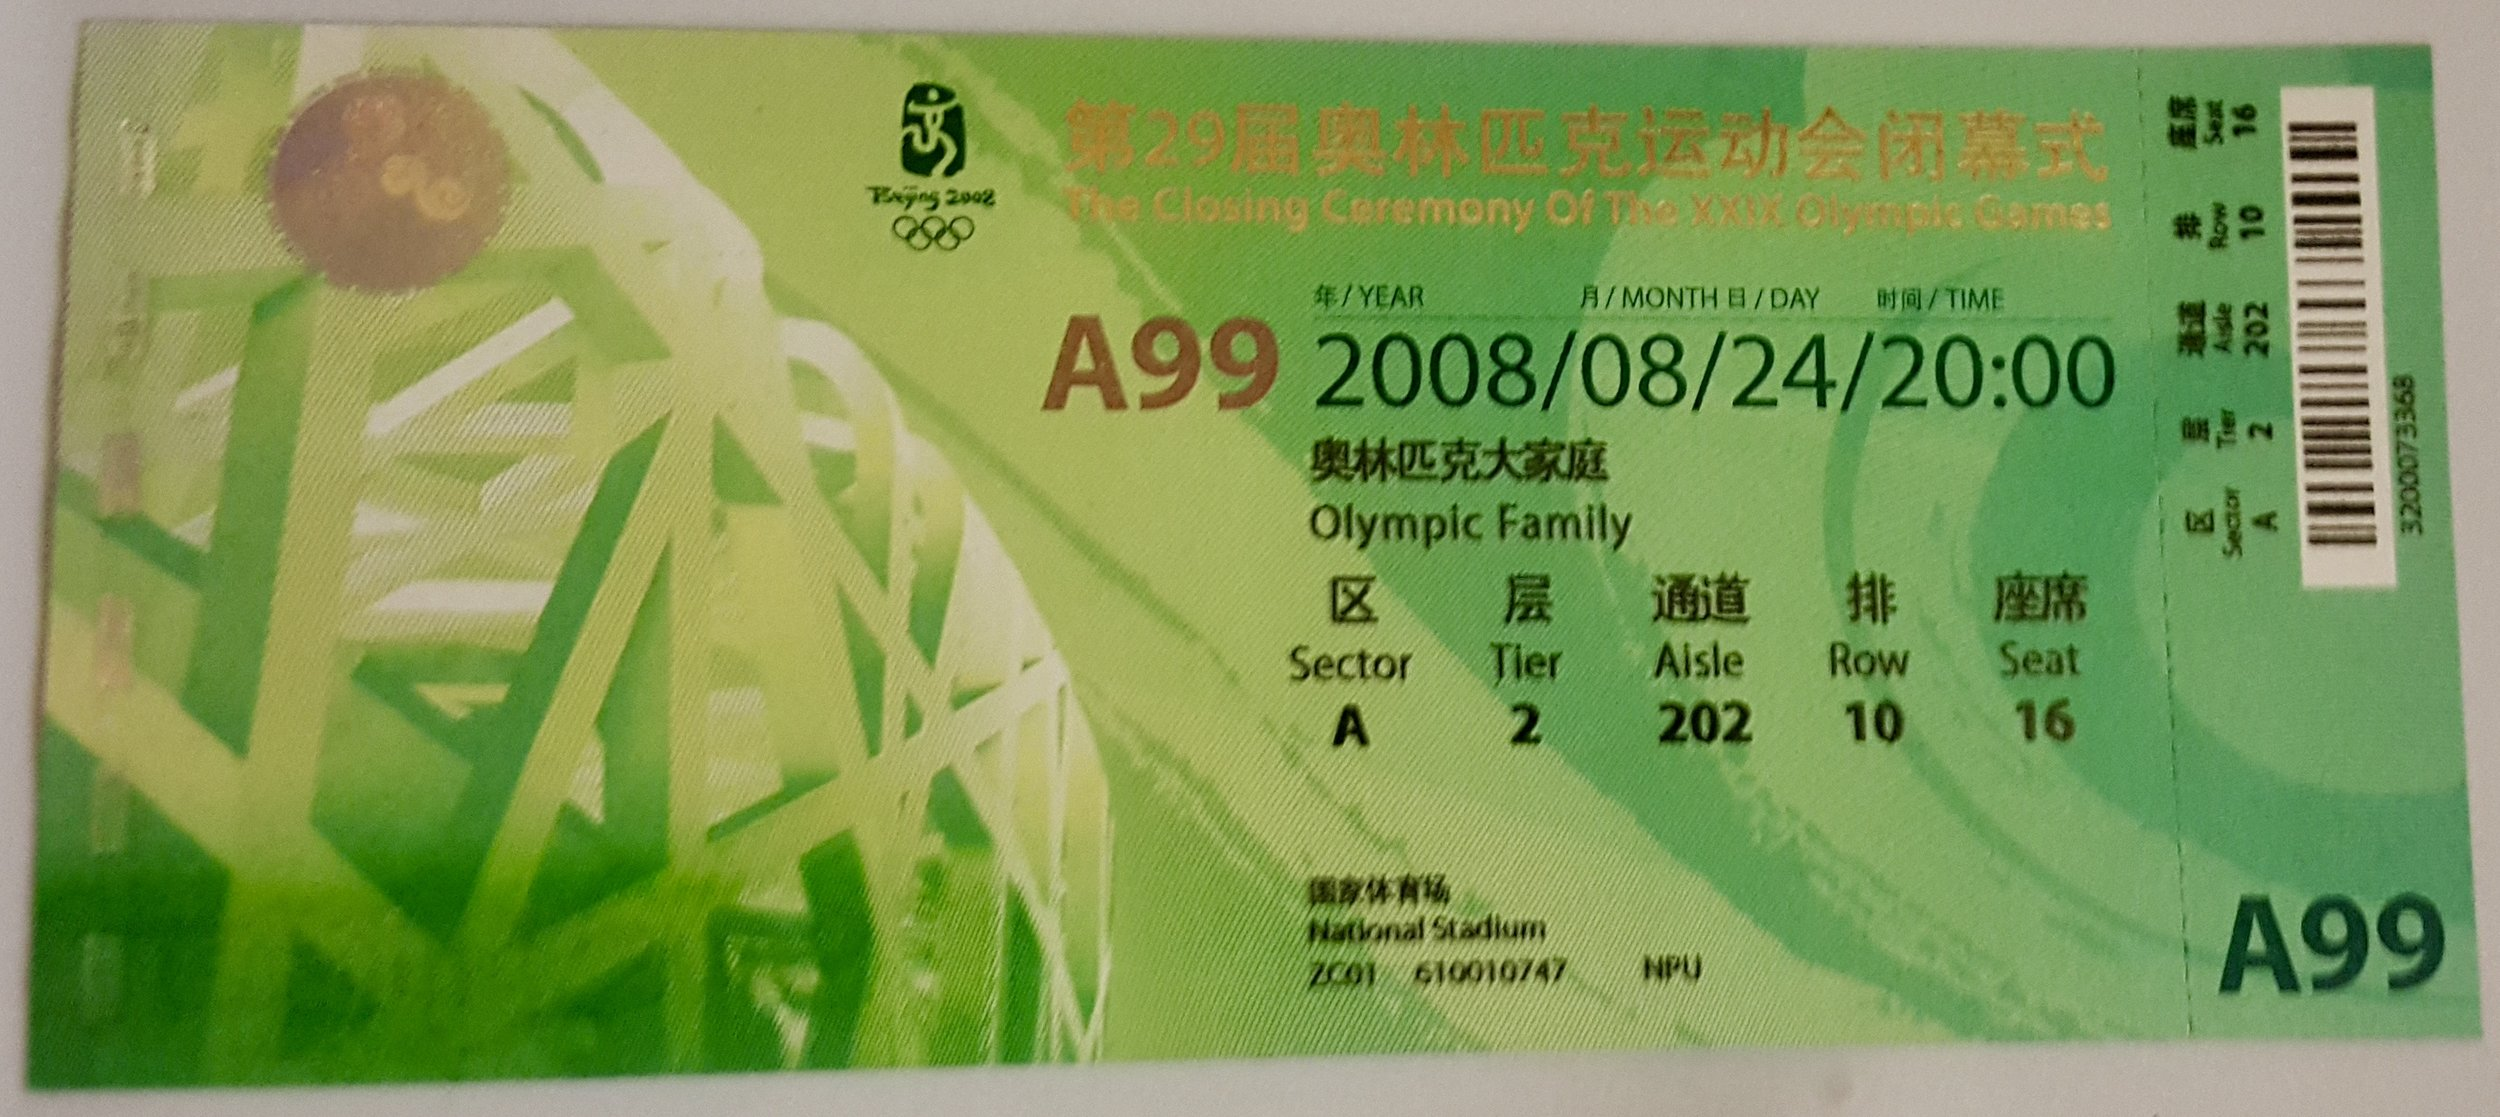 My ticket for the Beijing 2008 Games Opening Ceremony